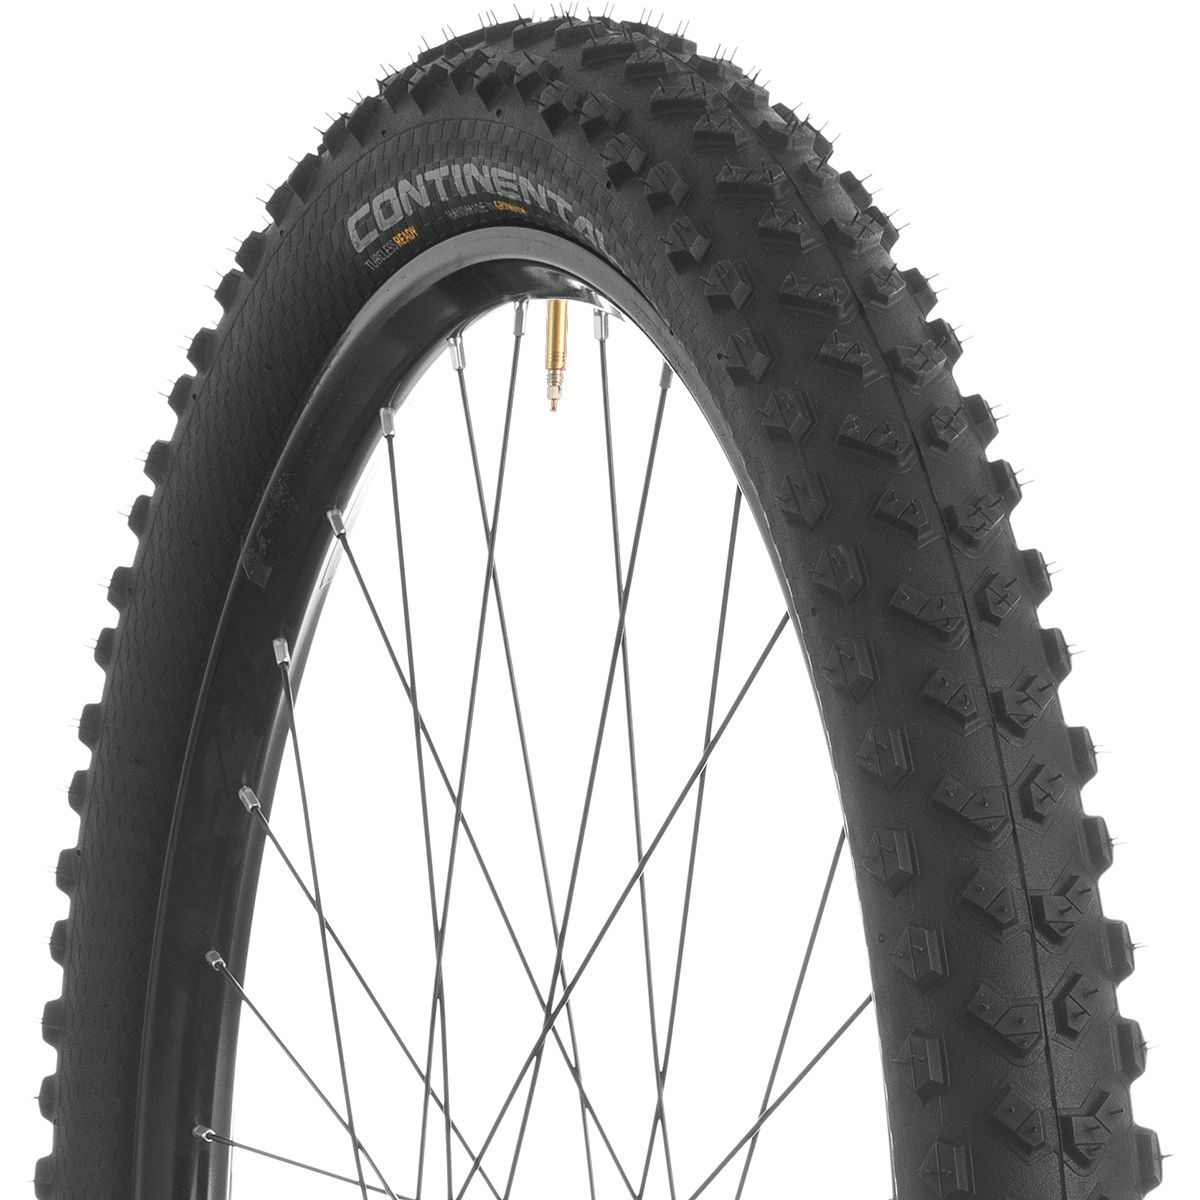 Continental Mountain King Tire 26in Mountain Bike Tires Tire